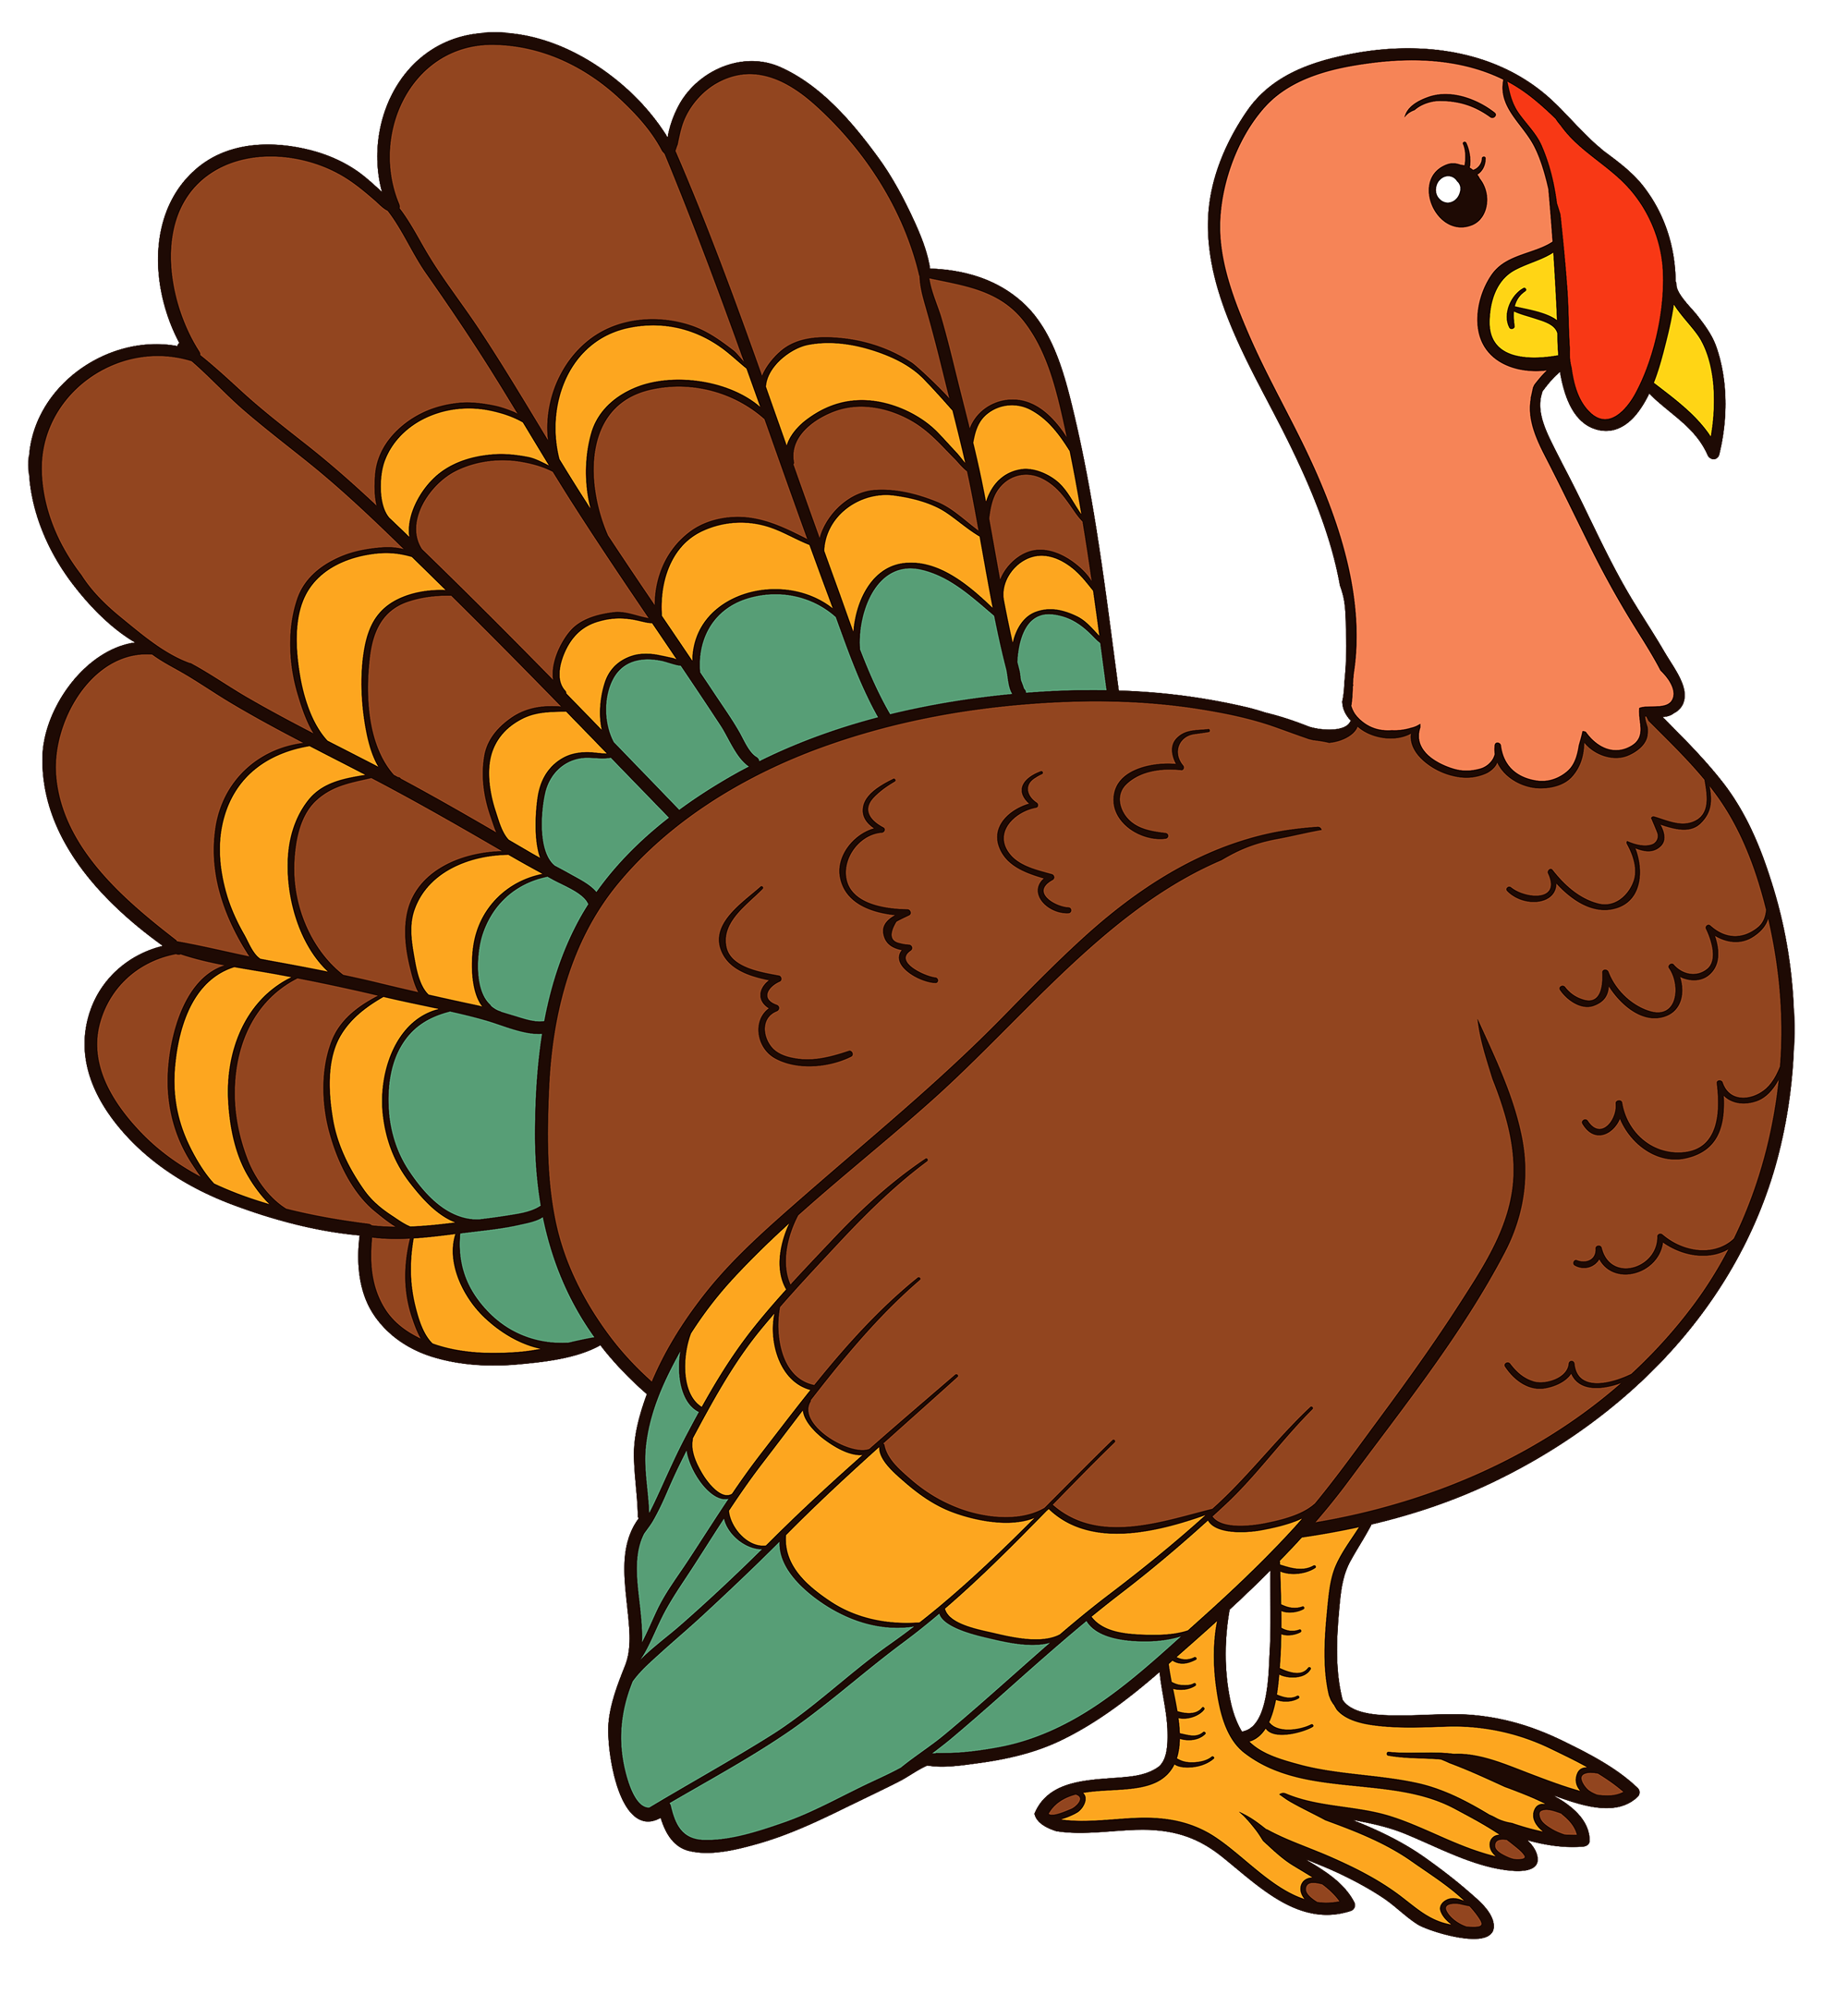 Thanksgiving turkey fitness clipart svg transparent download Turkey Clipart - Dr. Odd svg transparent download